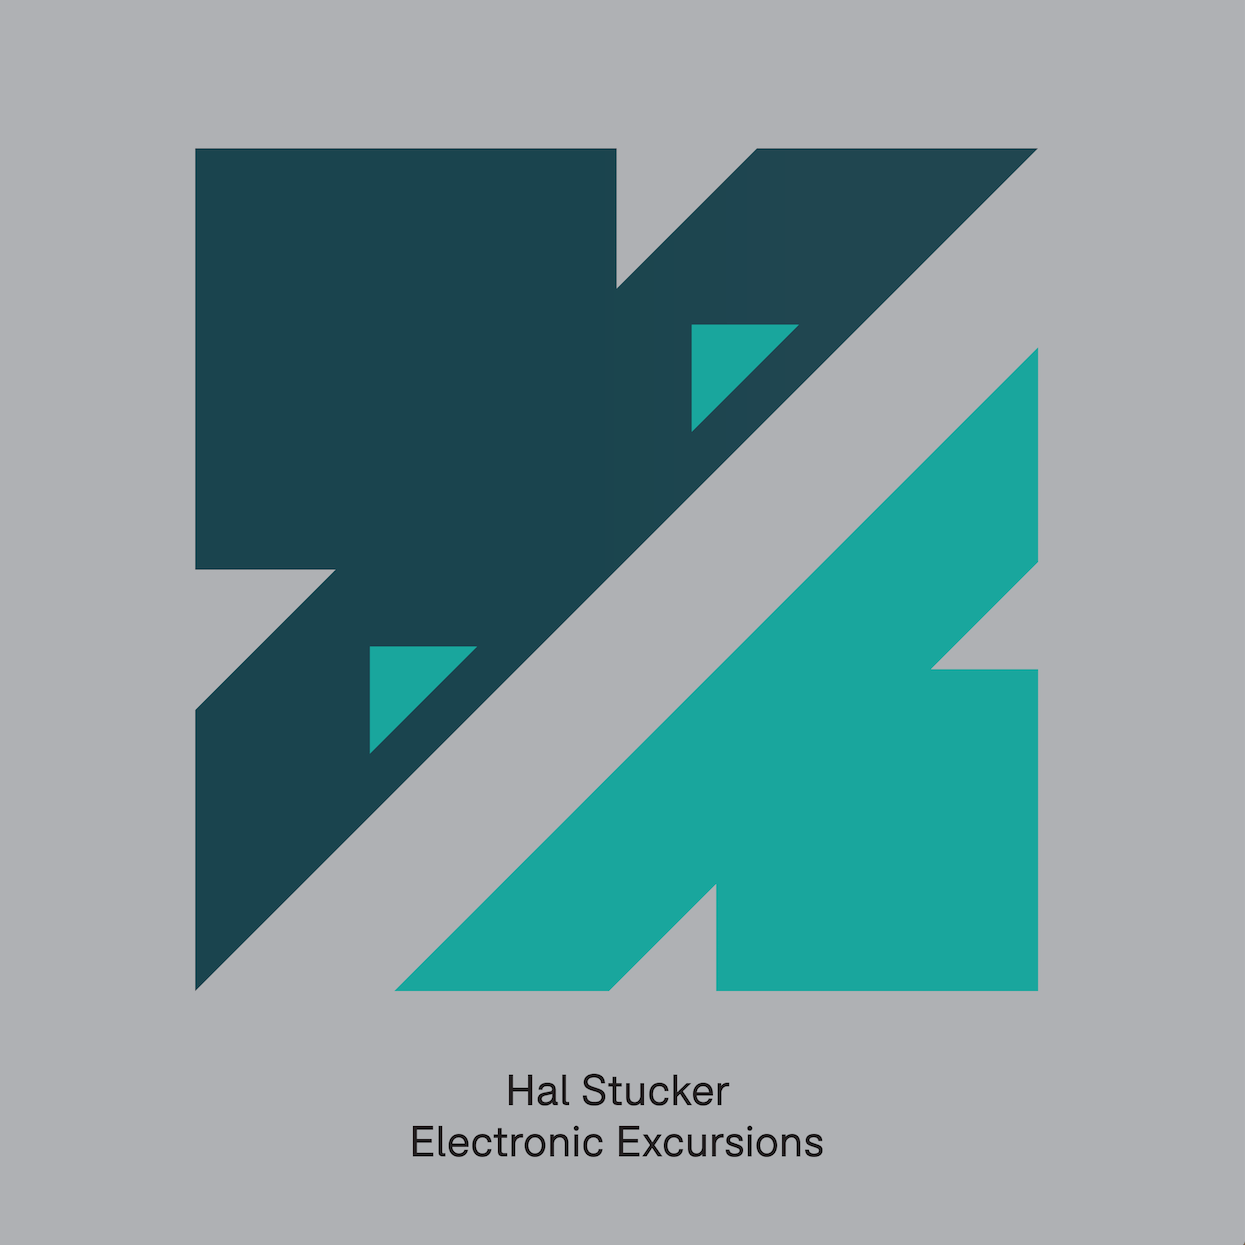 hal_stucker_-_electronic_excursions.png